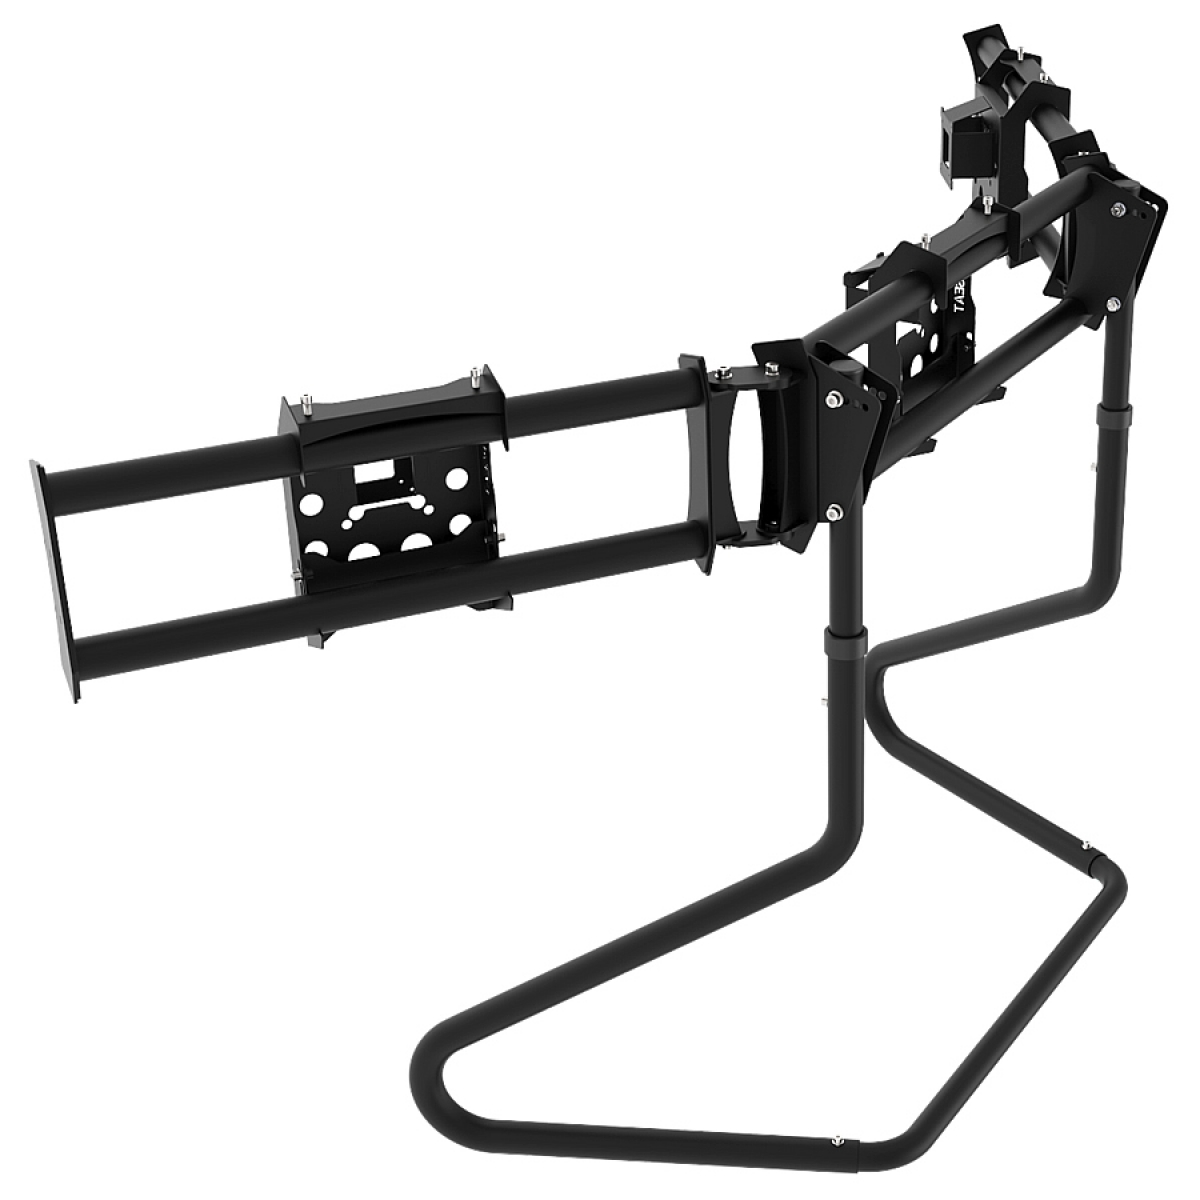 RS STAND T3XLM Black - Triple Ultra Wide Monitor Stand up to 3x38inch